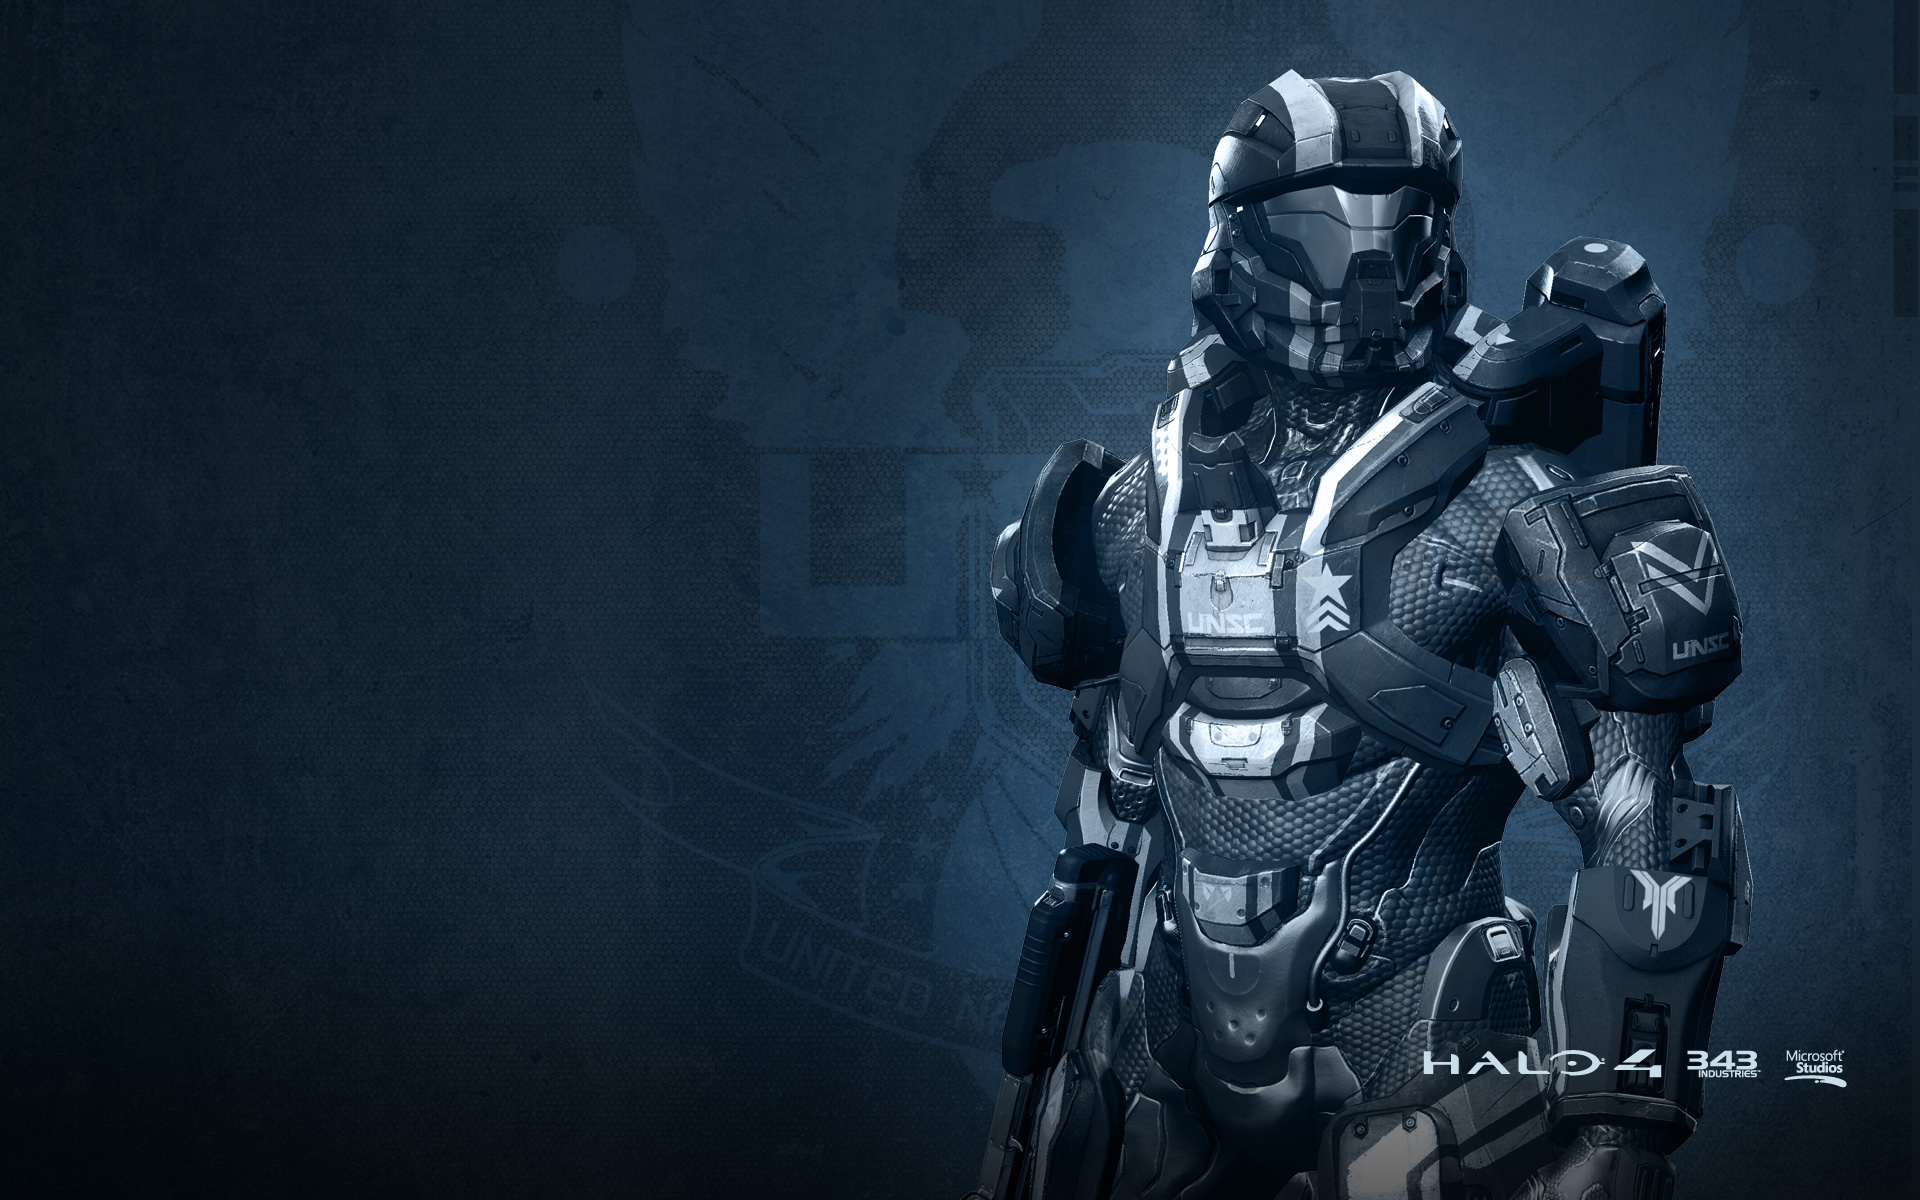 halo 4 Watch popular halo 4 live streams on twitch  halo 4 17,952 followers 0  viewers live channels videos clips follow language rajinvi cover image.